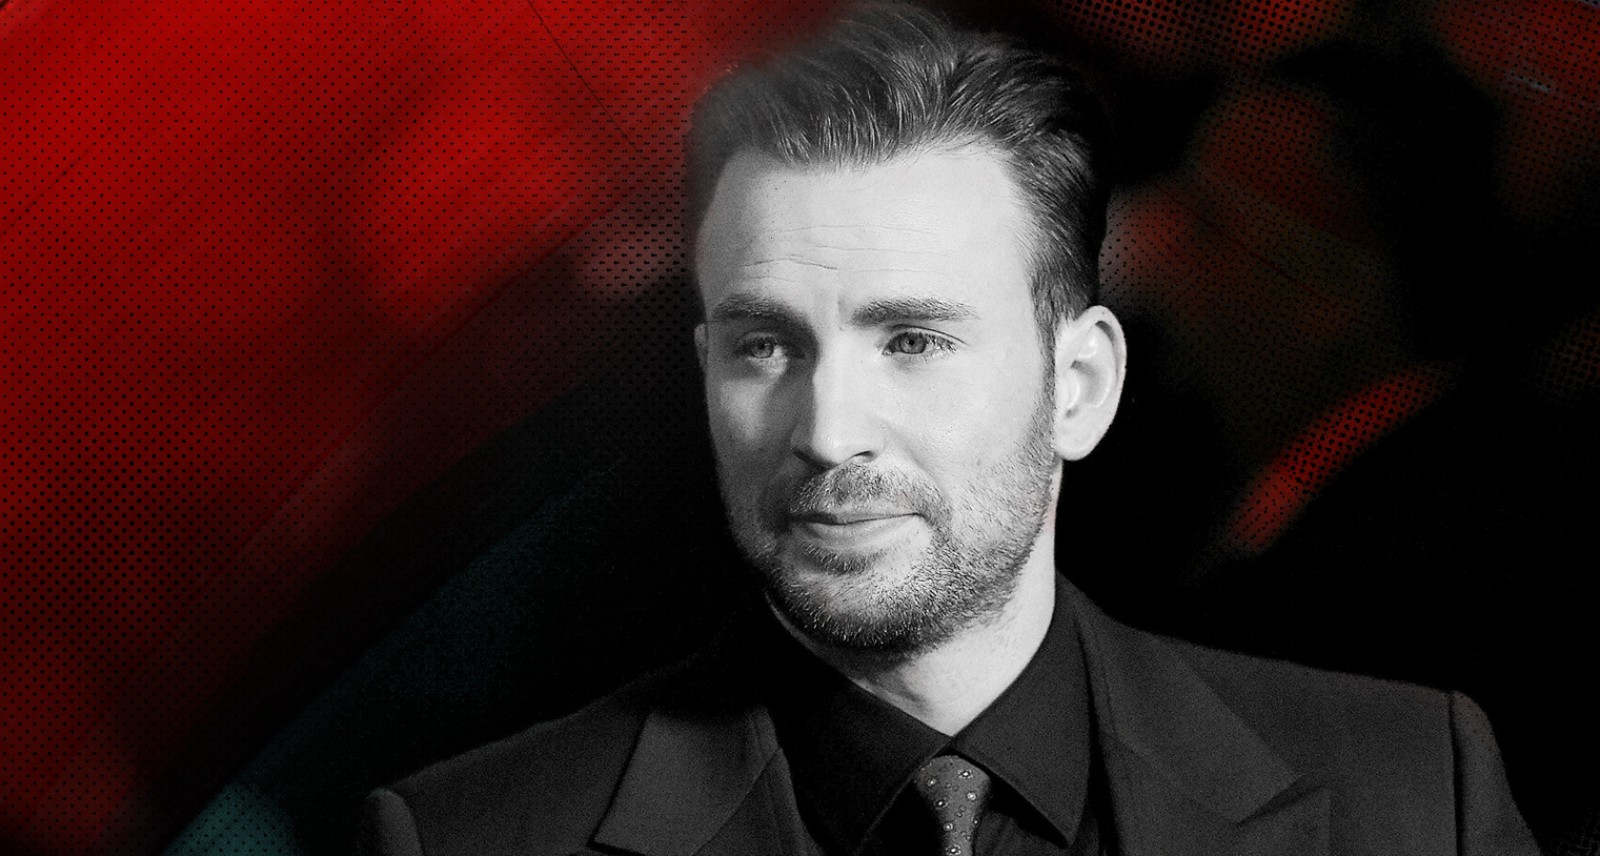 Chris Evans Is Tired of Feeling Inauthentic Sharp Magazine 1600x856